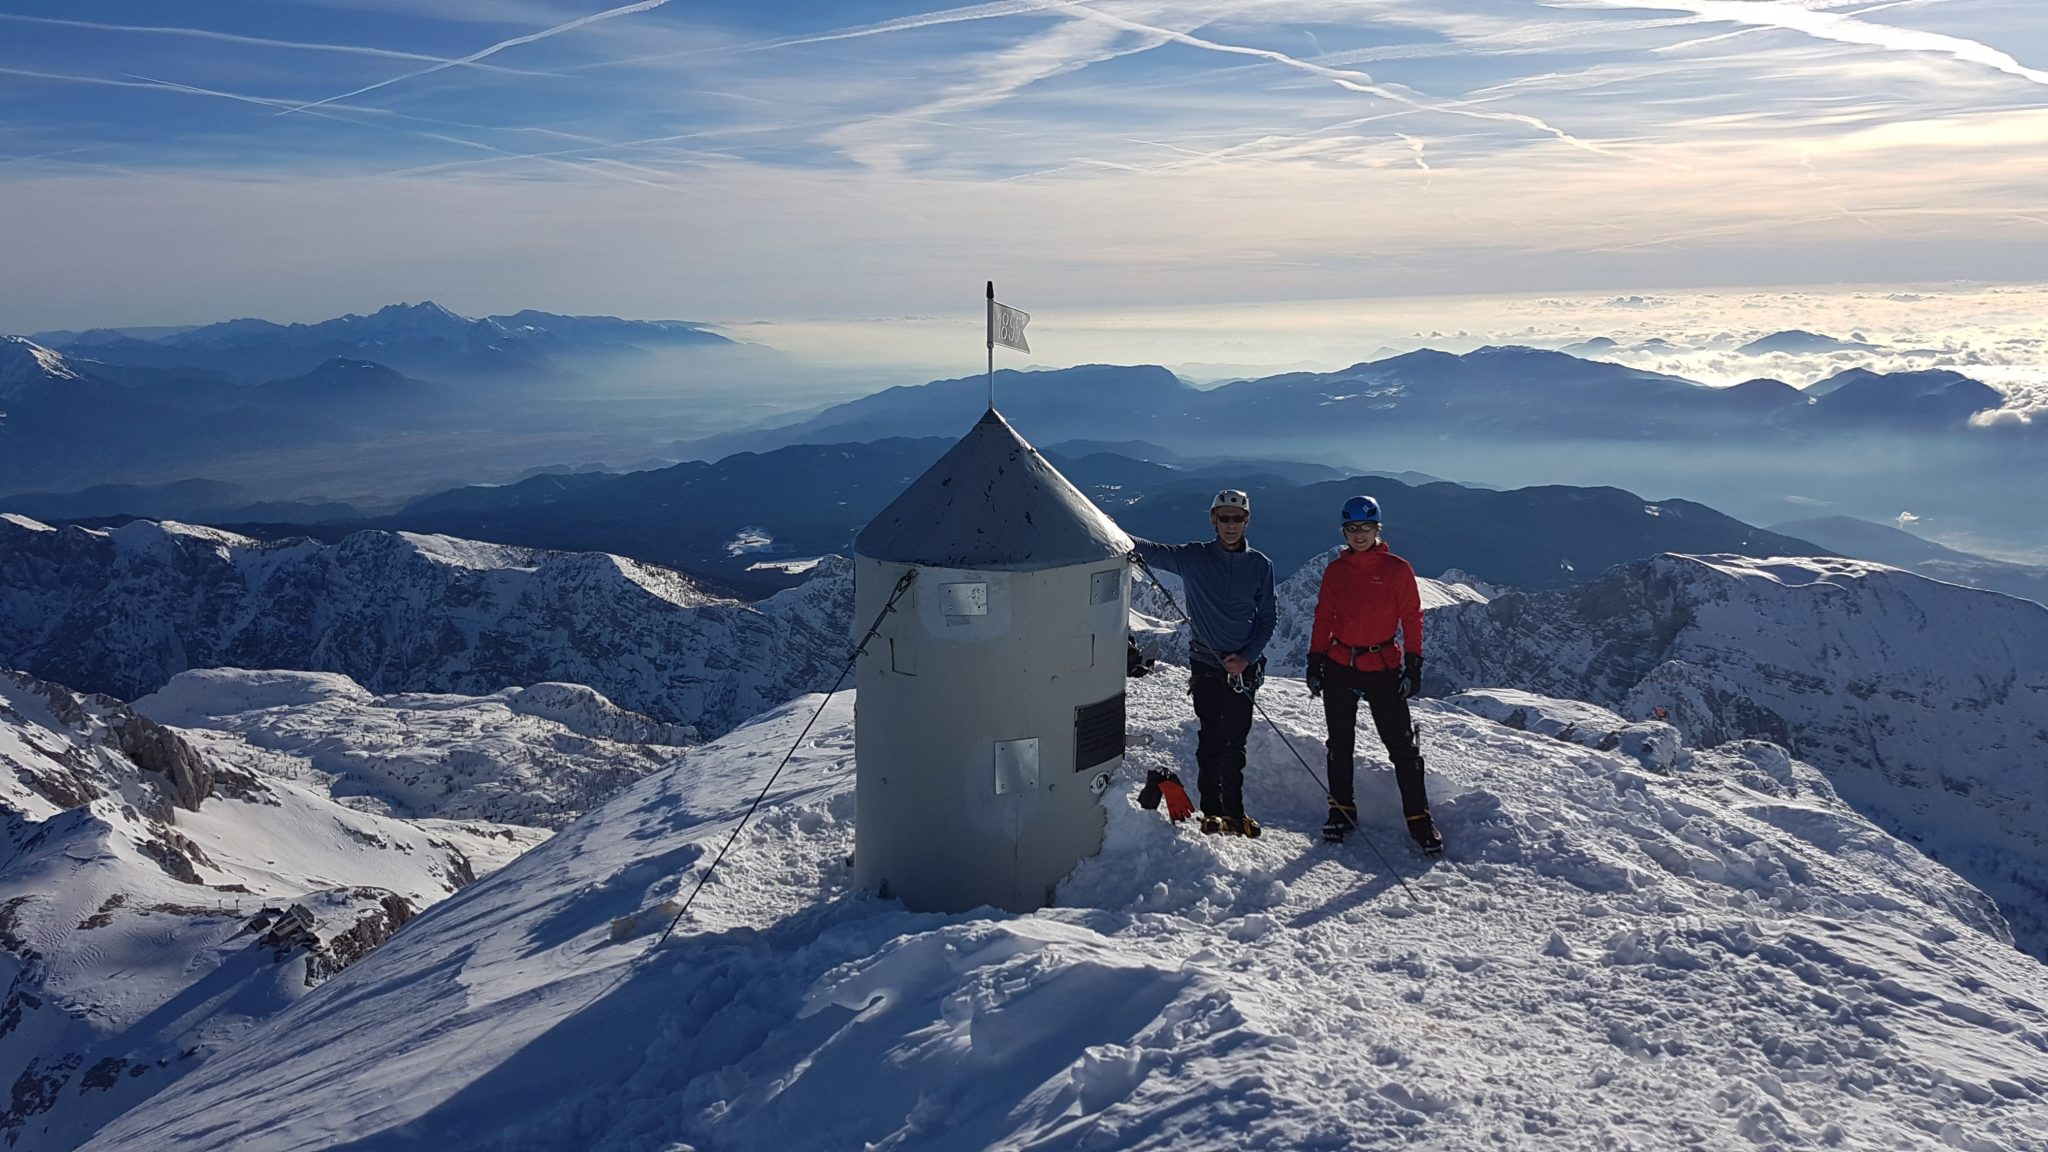 At the top of Triglav, the highest mountain of Slovenia